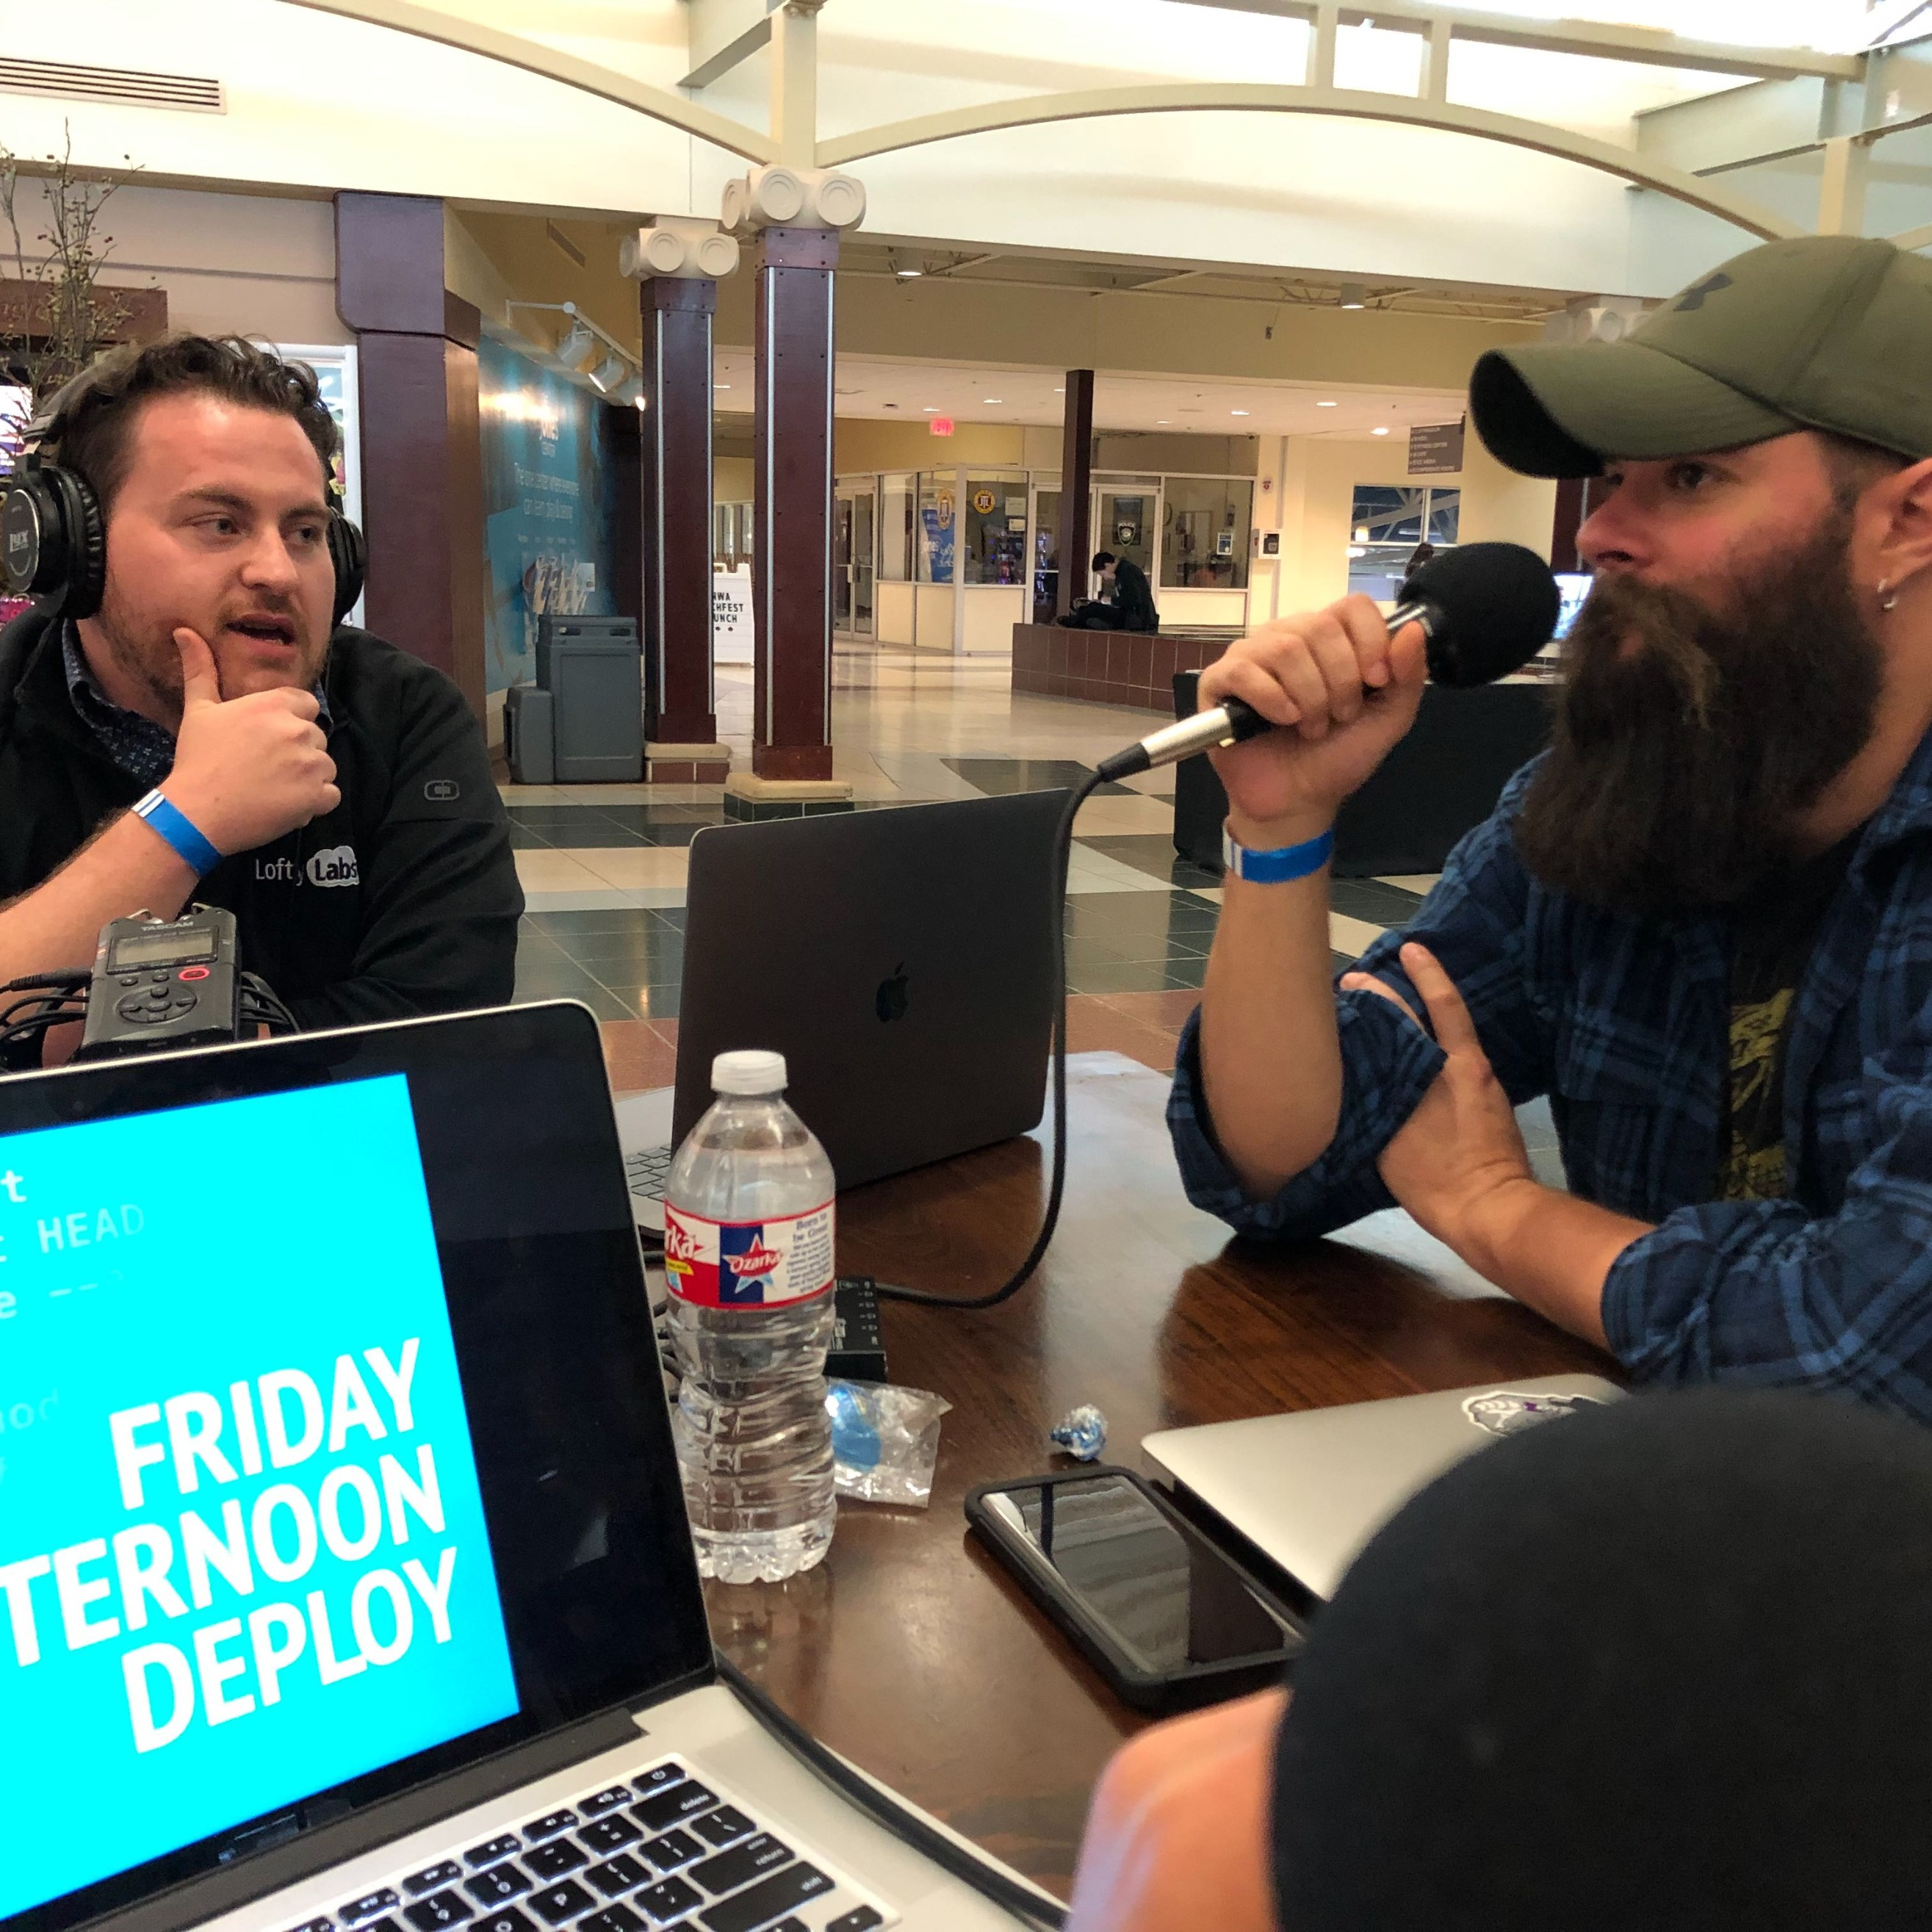 Live from NWA TechFest 2019 w/ Daniel Worthy and Chrissy Wainwright